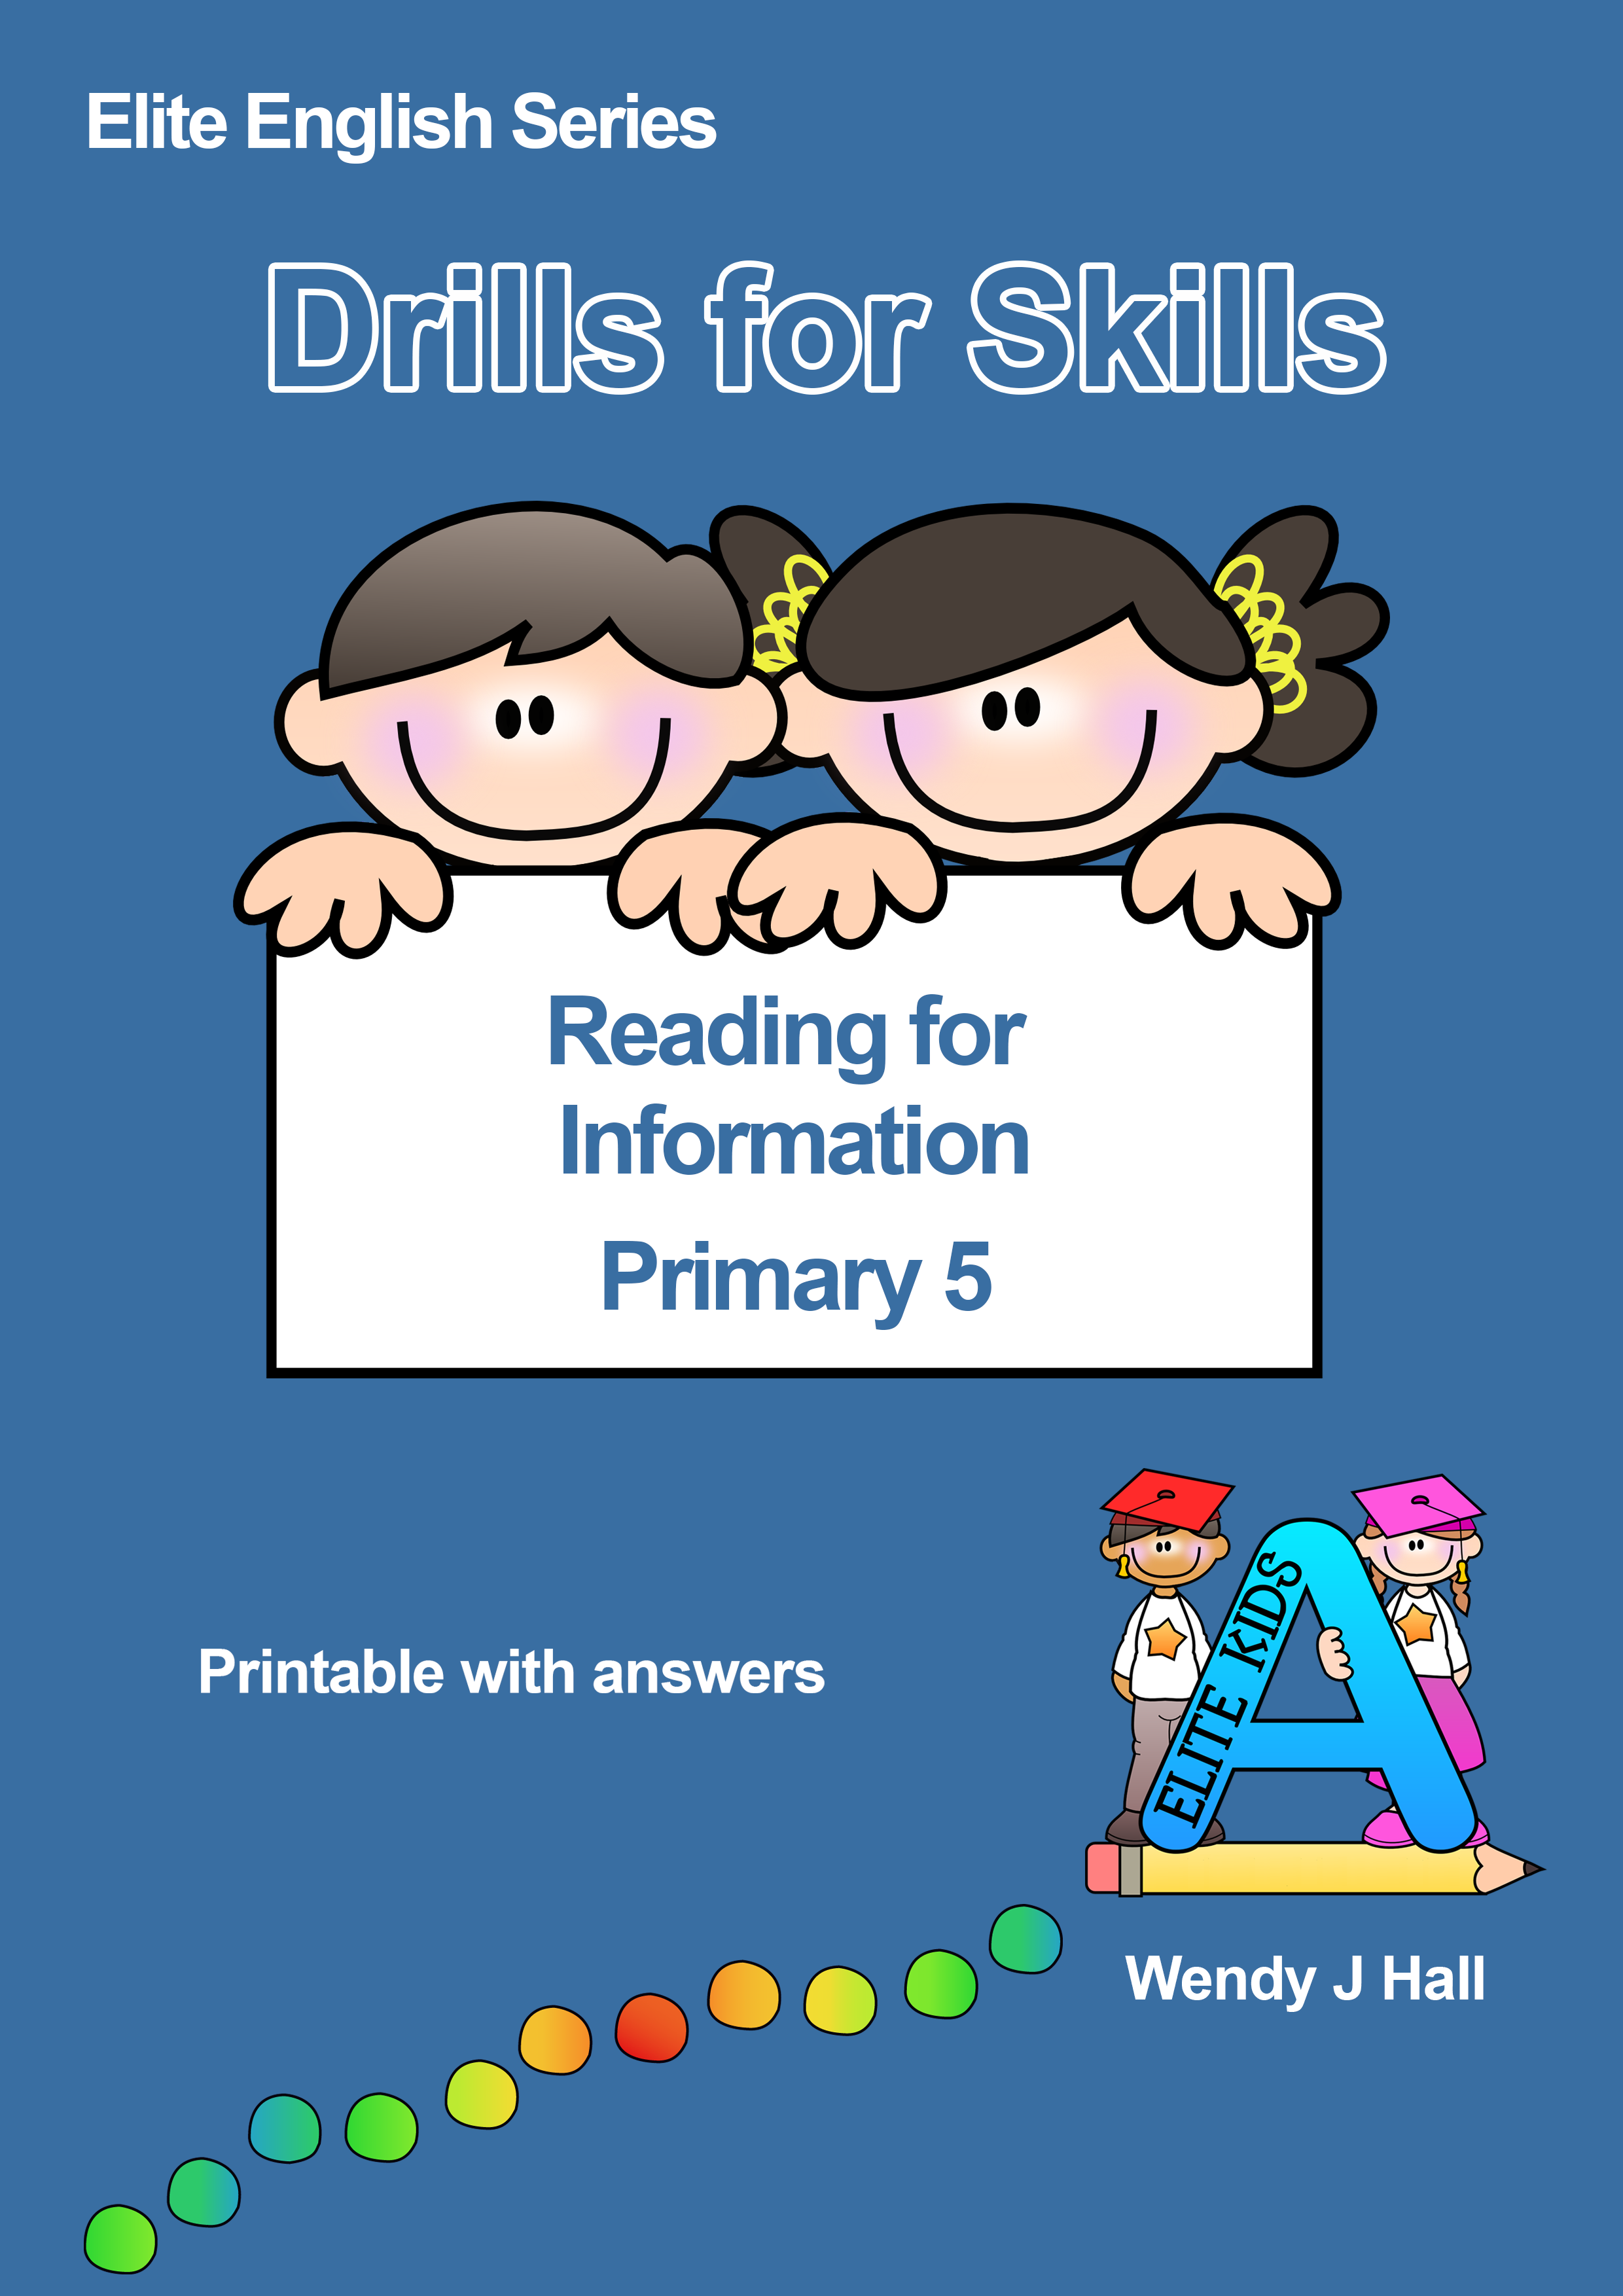 Drills for Skills - Reading for information